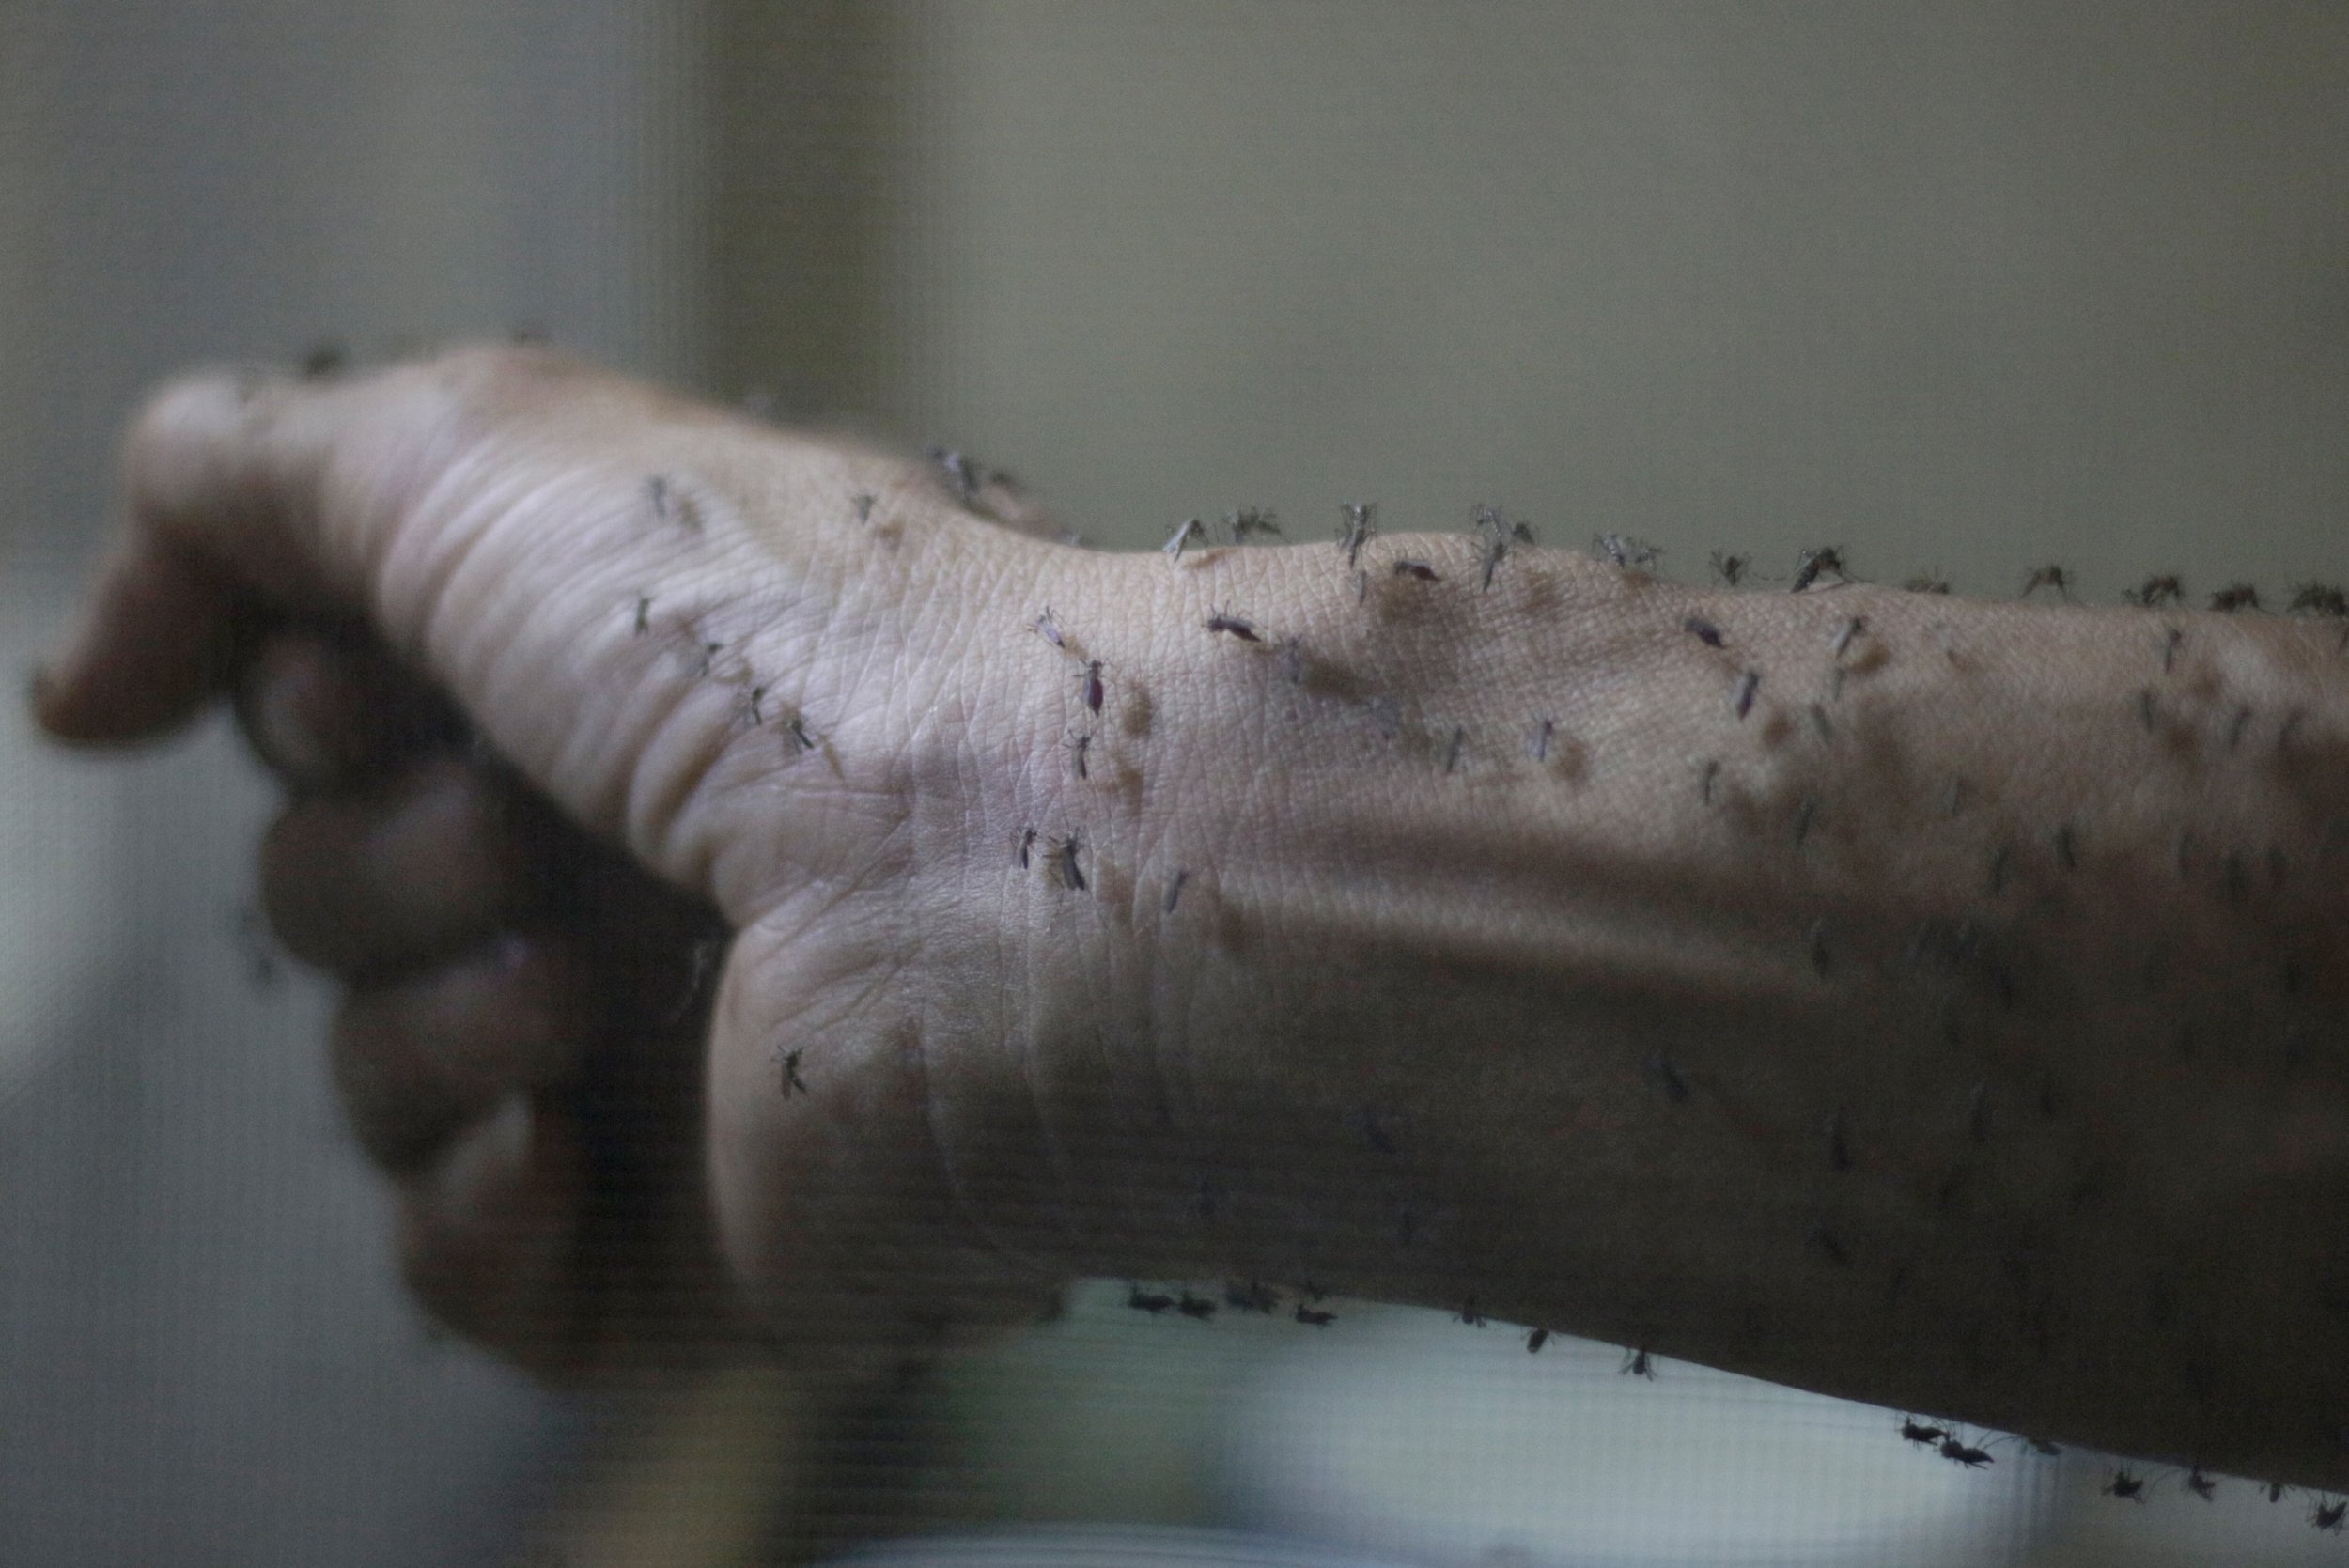 The forearm of a public health technician is seen covered with sterile female Aedes aegyti mosquitoes after leaving a recipient to cultivate larvae, in a research area to prevent the spread of Zika virus and other mosquito-borne diseases, at the entomology department of the Ministry of Public Health, in Guatemala City, January 26, 2016. REUTERS/Josue Decavele TPX IMAGES OF THE DAY